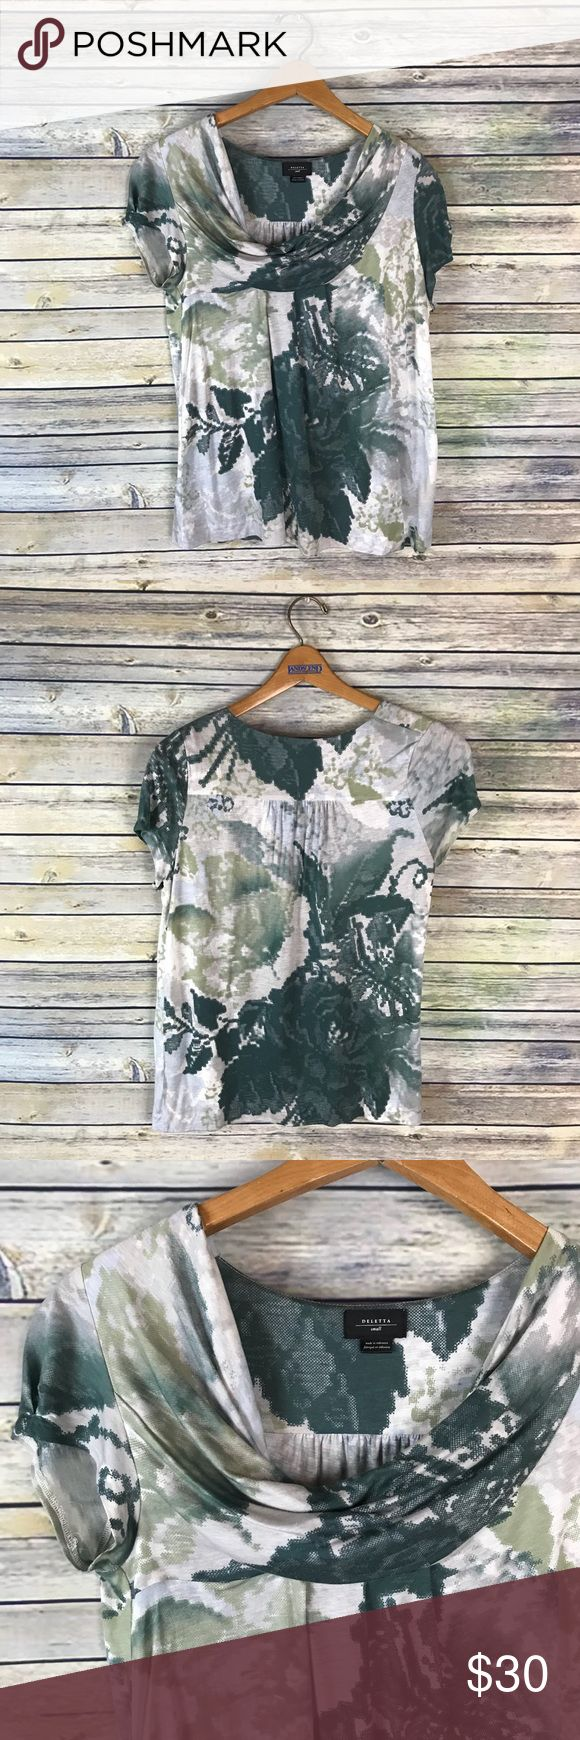 """Deletta Anthropologie Make a Splash Cowl Neck Top Very pretty green watercolor floral top with a slouchy cowl neck. Gently used condition.  Measurements laying flat (without stretching) -  -Armpit to armpit: 19"""" -Length, shoulder to hem: 24"""" Anthropologie Tops"""